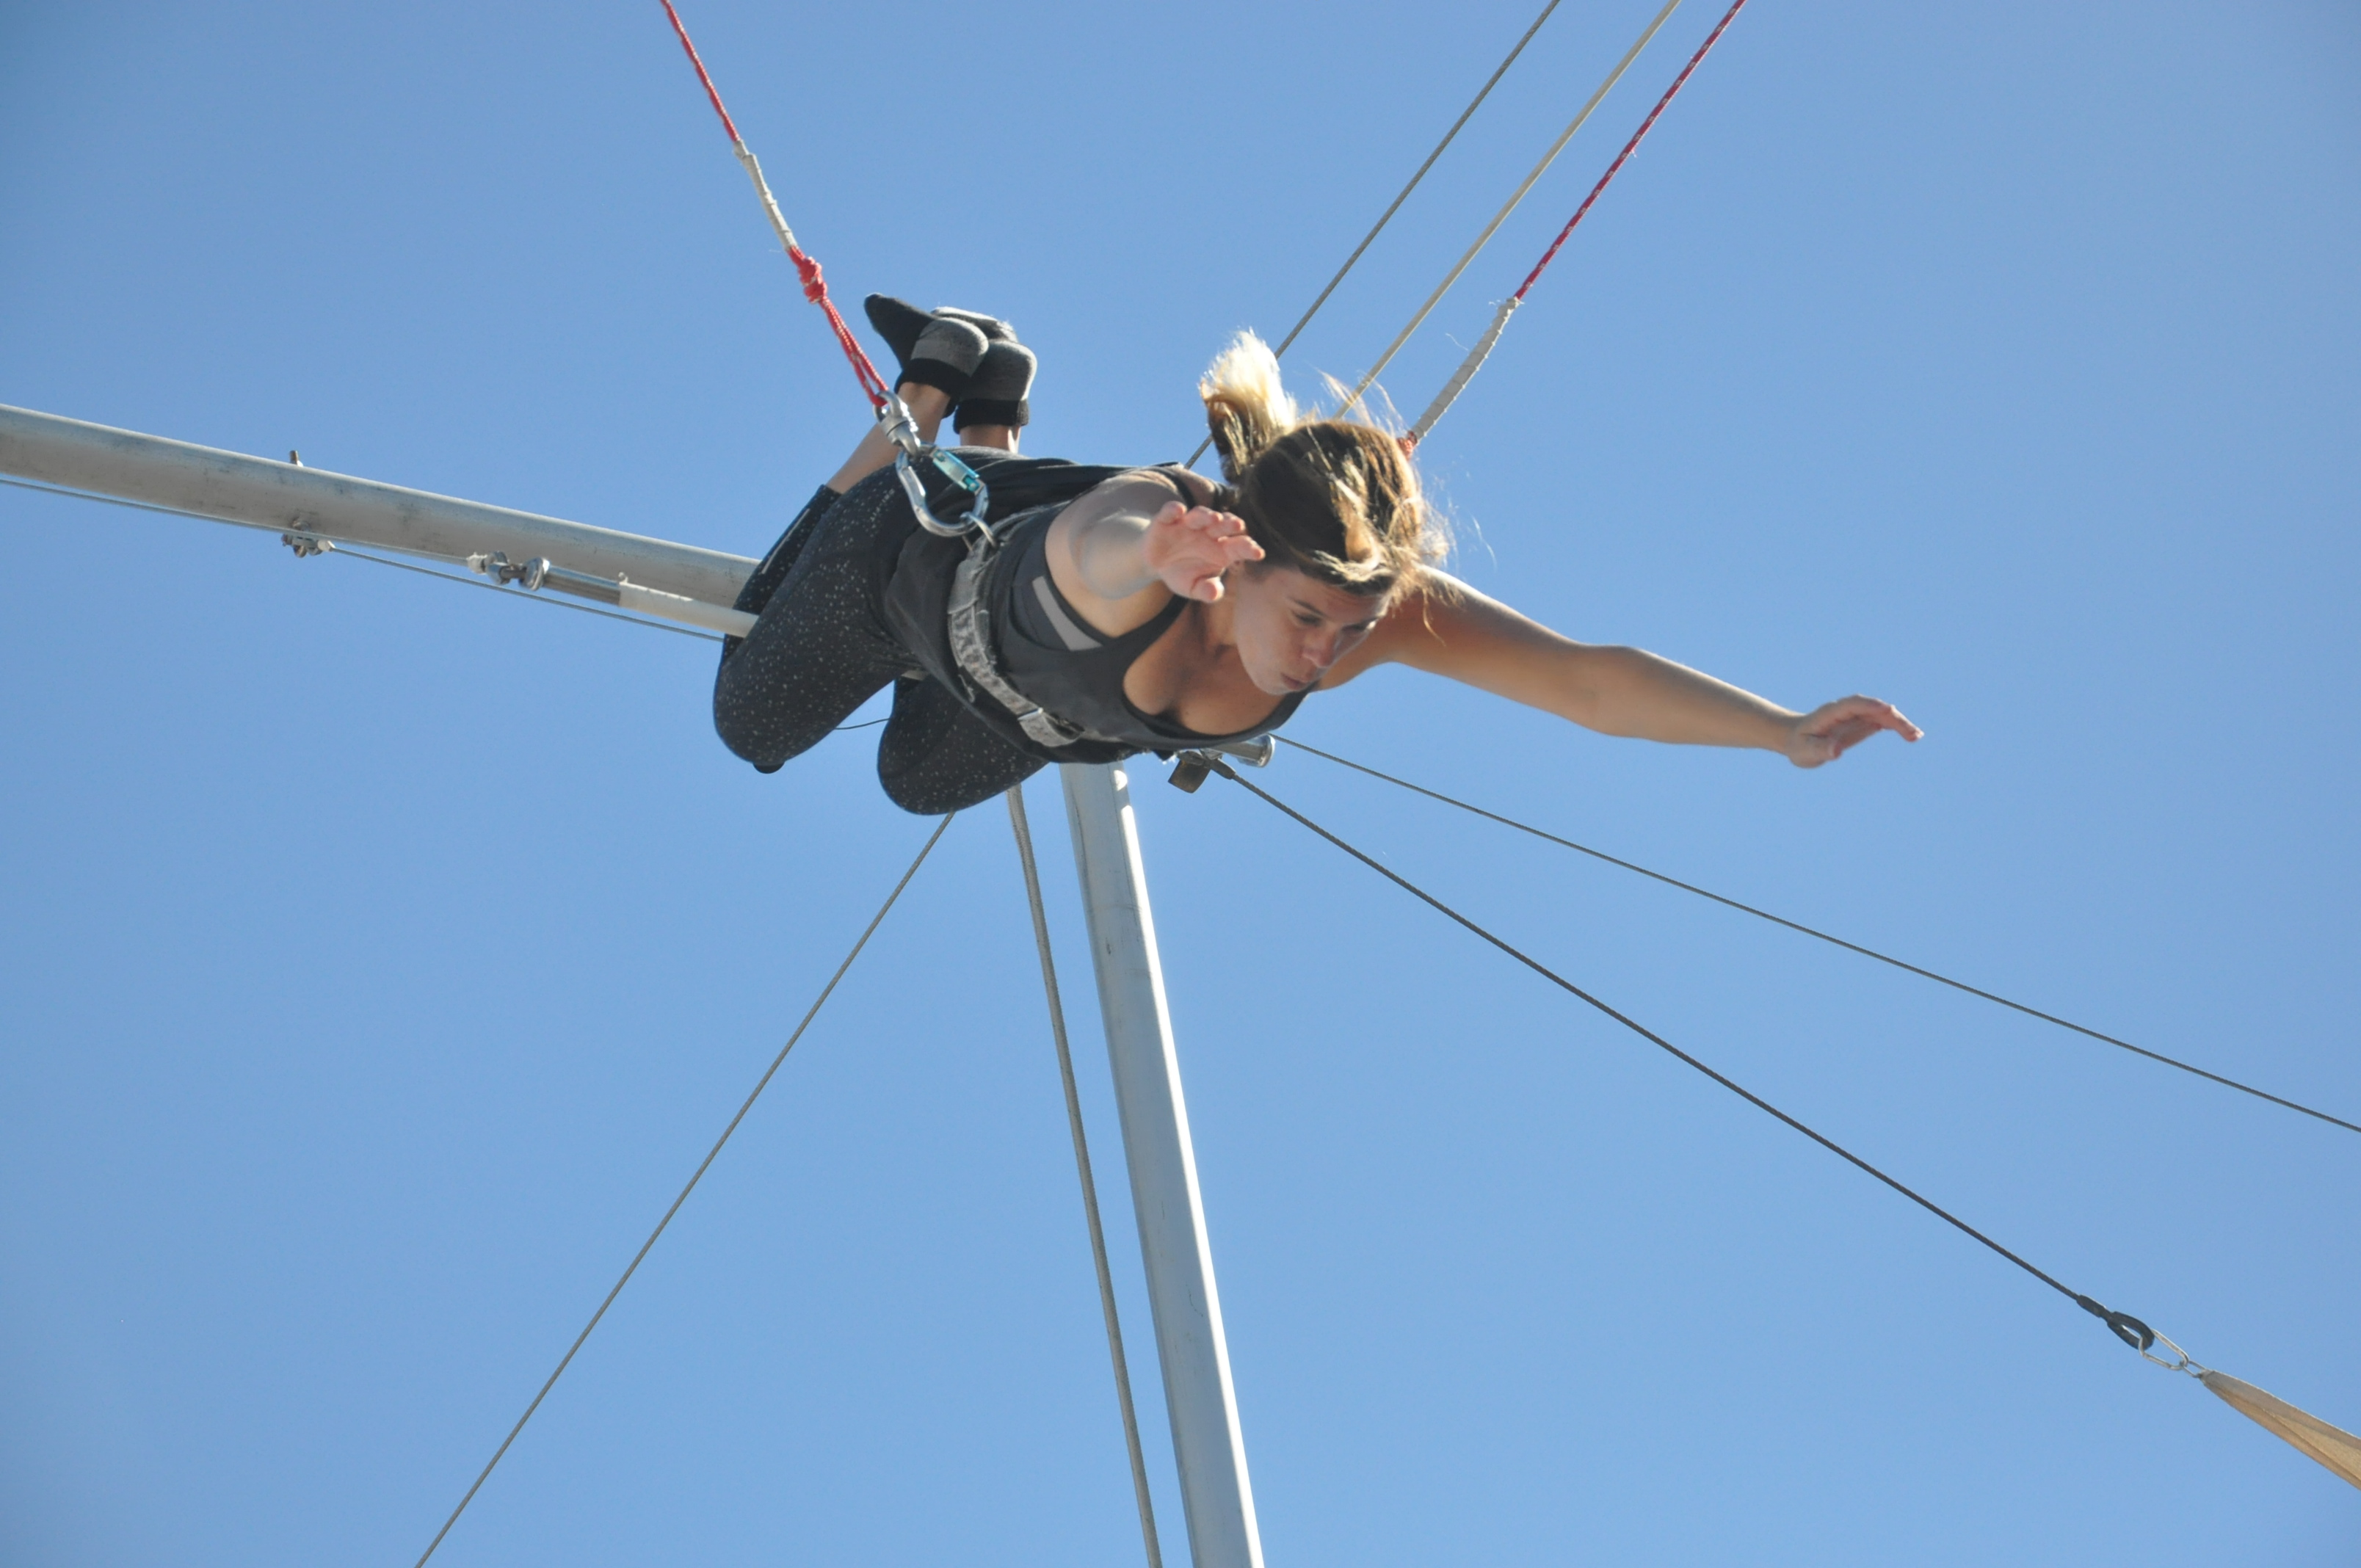 Entrepreneur Tiffany Scott about to make the catch on the flying trapeze! Trapeze School November 2015 Santa Monica, CA